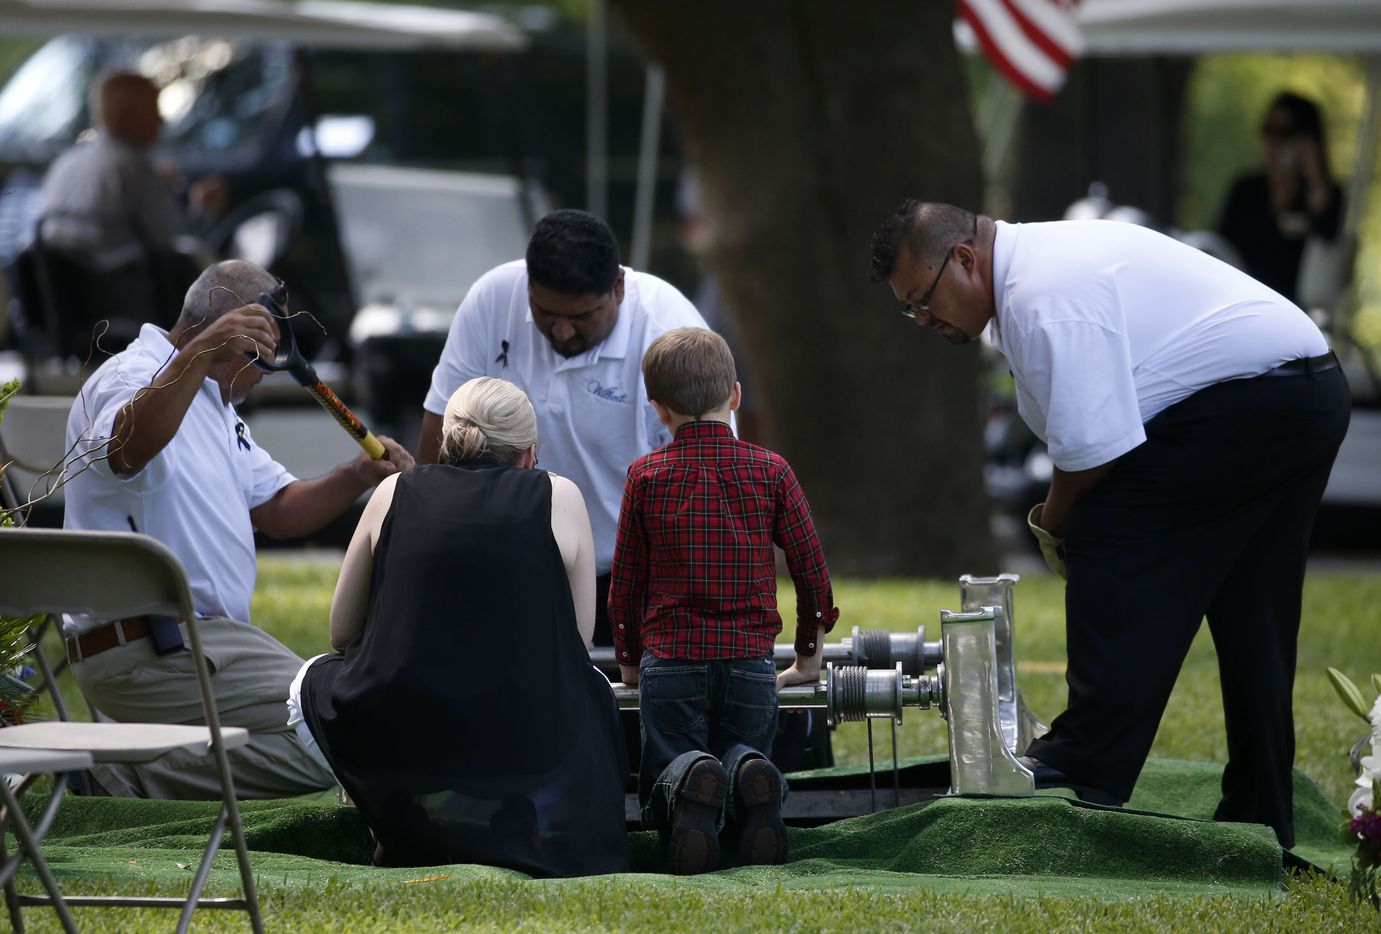 Katrina Ahrens, wife of fallen Dallas police officer Lorne Ahrens, kneels beside her son Magnus Ahrens, 8, at the burial for her husband in the Garden of Honor at Restland Funeral Home and Cemetery in Dallas on July 13, 2016. Ahrens and four other officers were gunned down during an ambush on police in downtown Dallas.